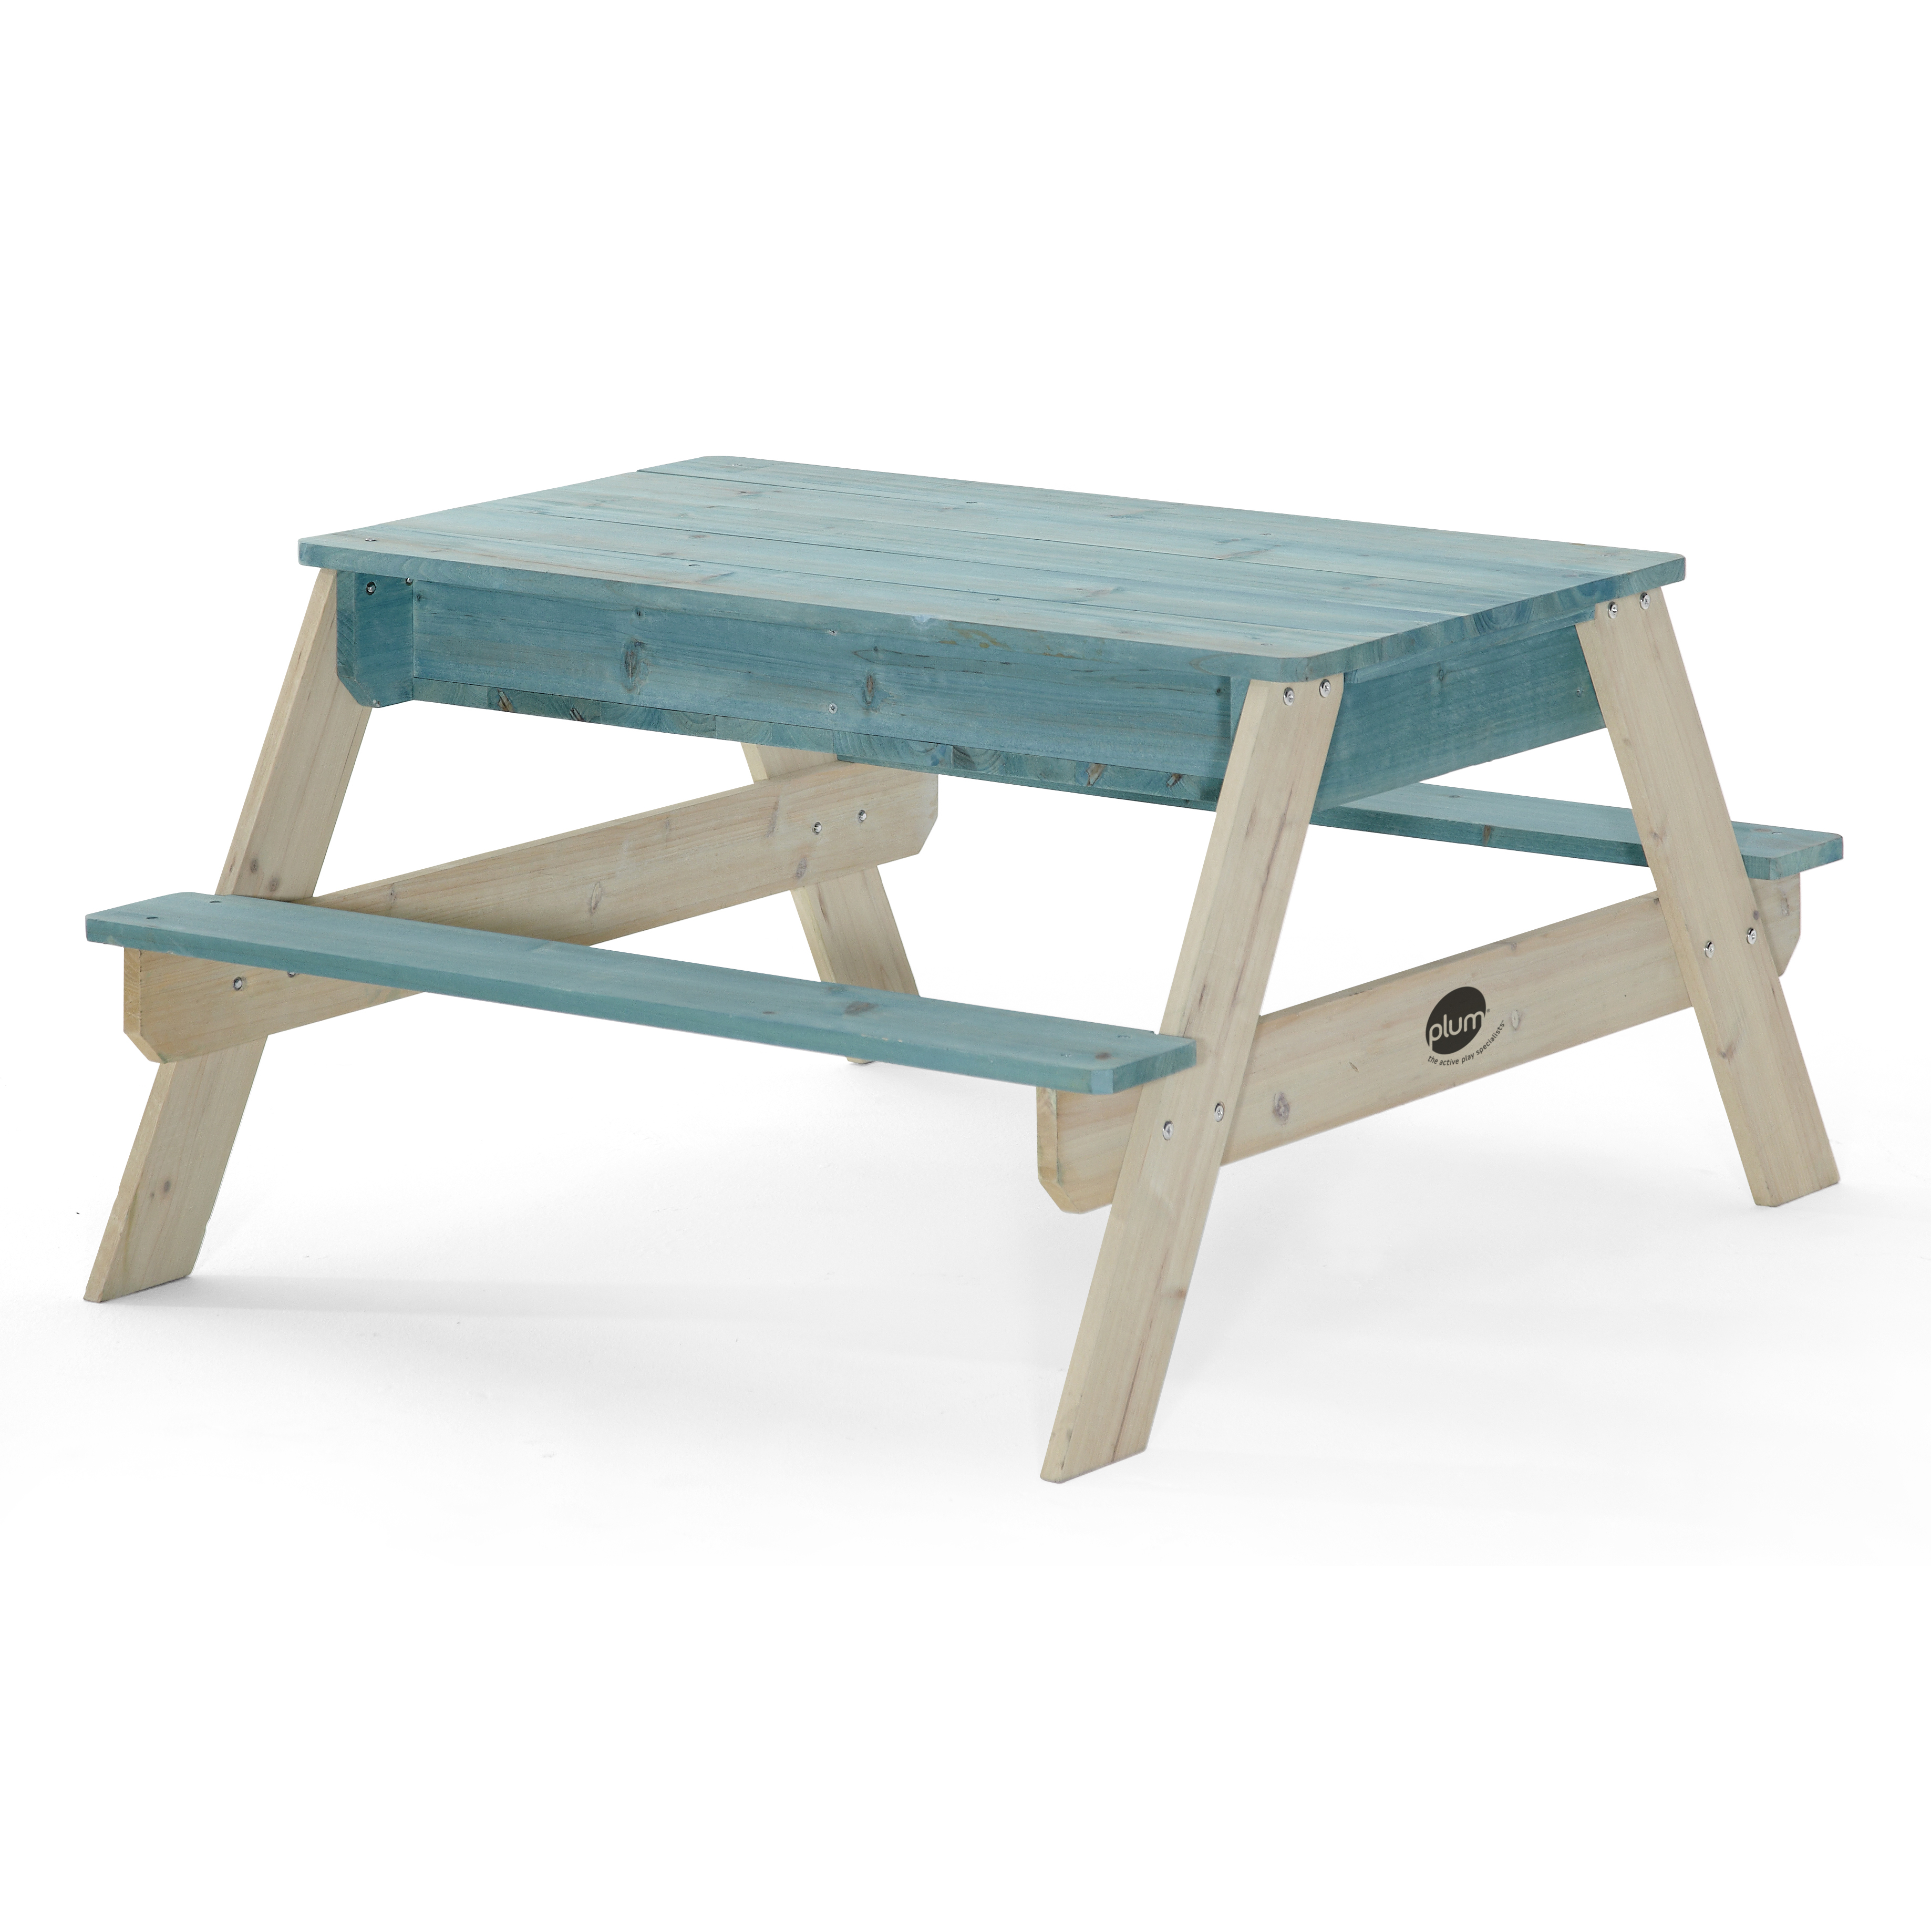 Plum Surfside Sand and Water Wooden Picnic Table Teal